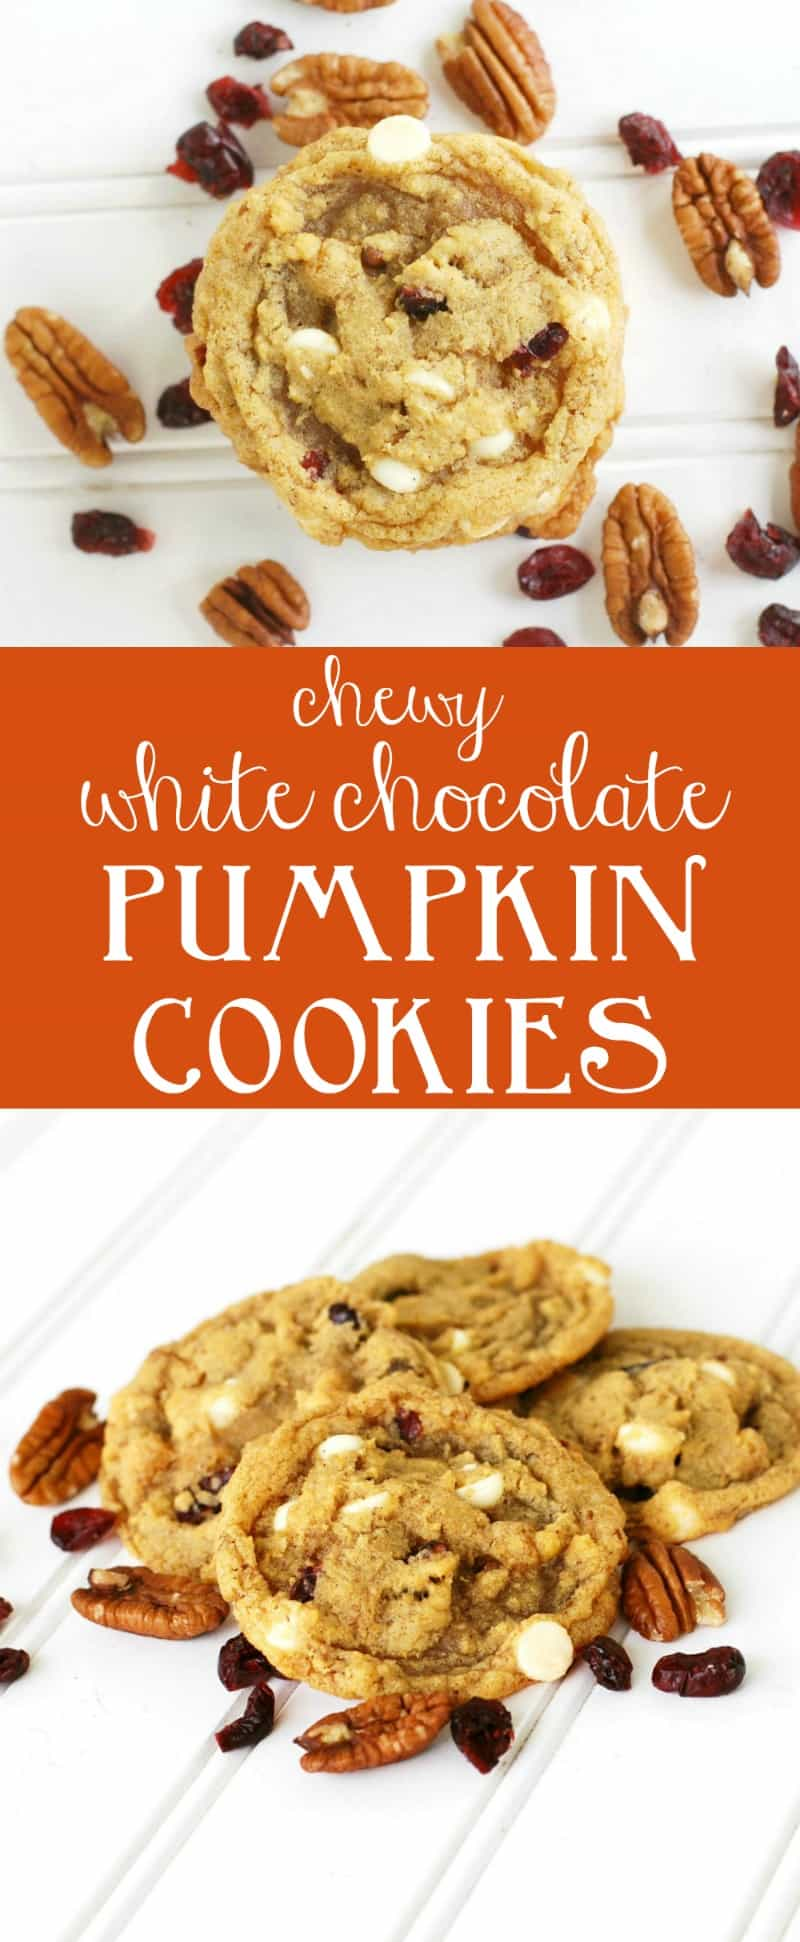 Chewy white chocolate pumpkin cookies with pecans and cranberries. A perfect non-cakey pumpkin cookie recipe. A must make for fall!